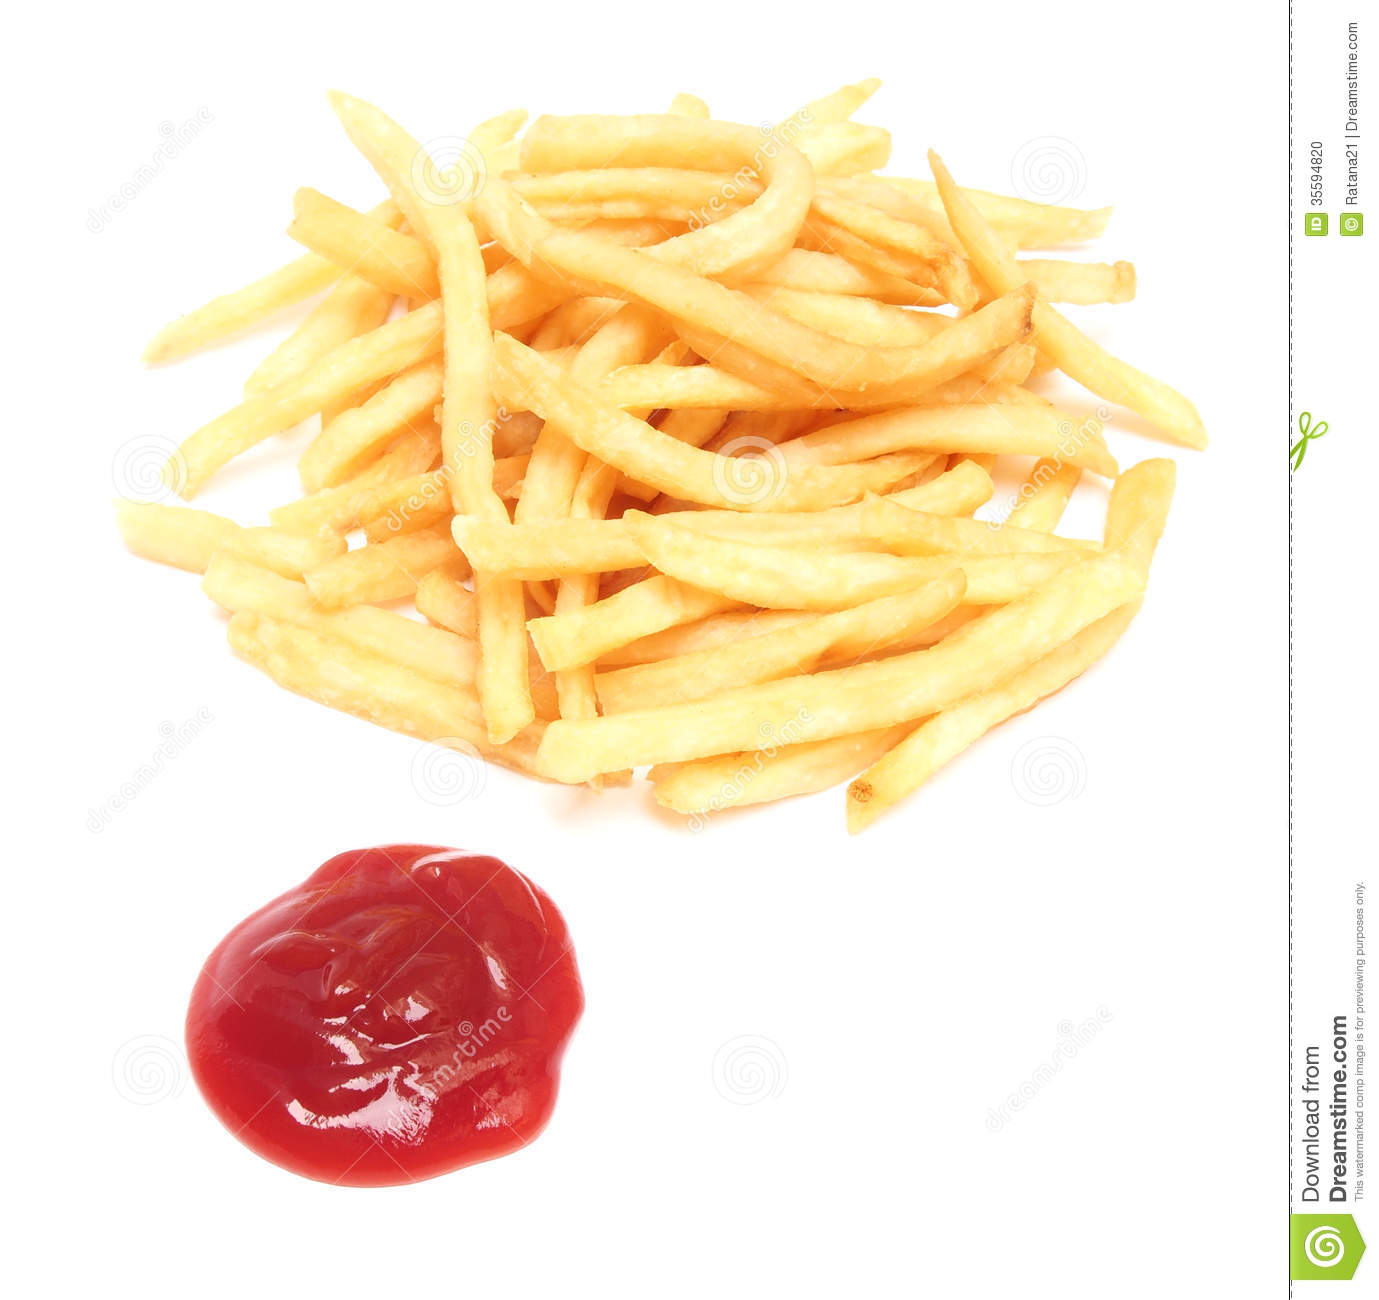 french fries with ketchup - photo #20